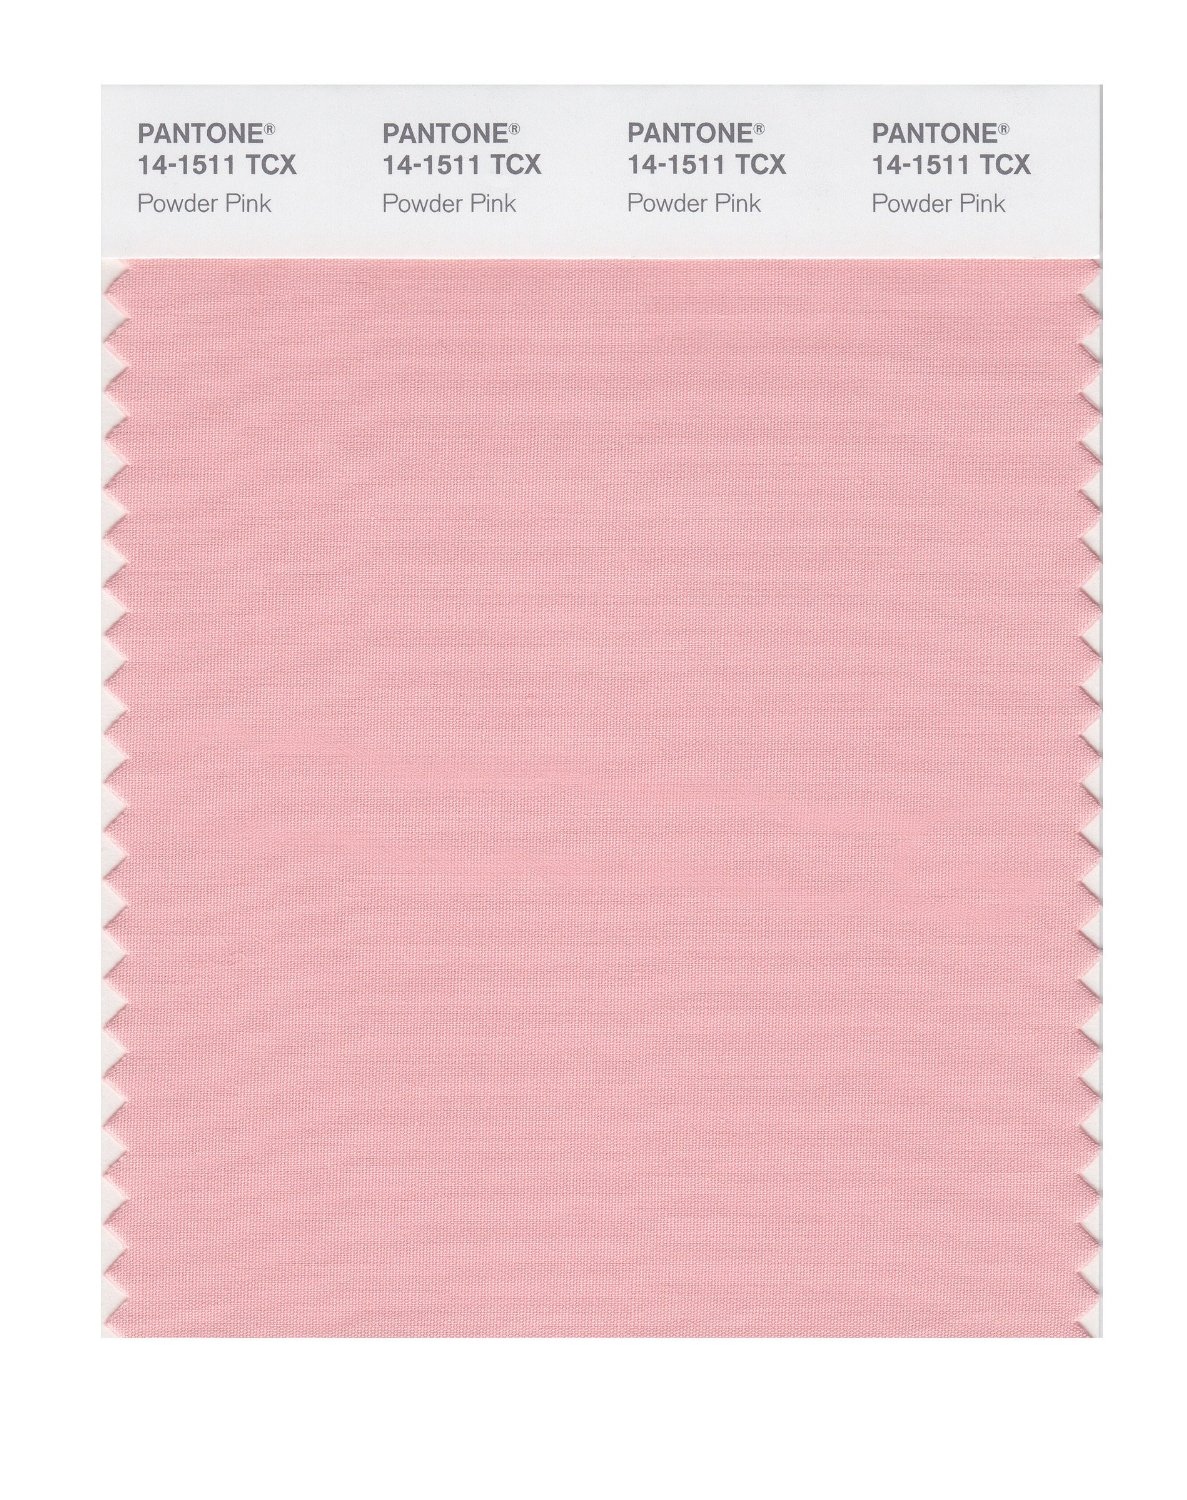 Pantone Smart Swatch 14-1511 Powder Pink